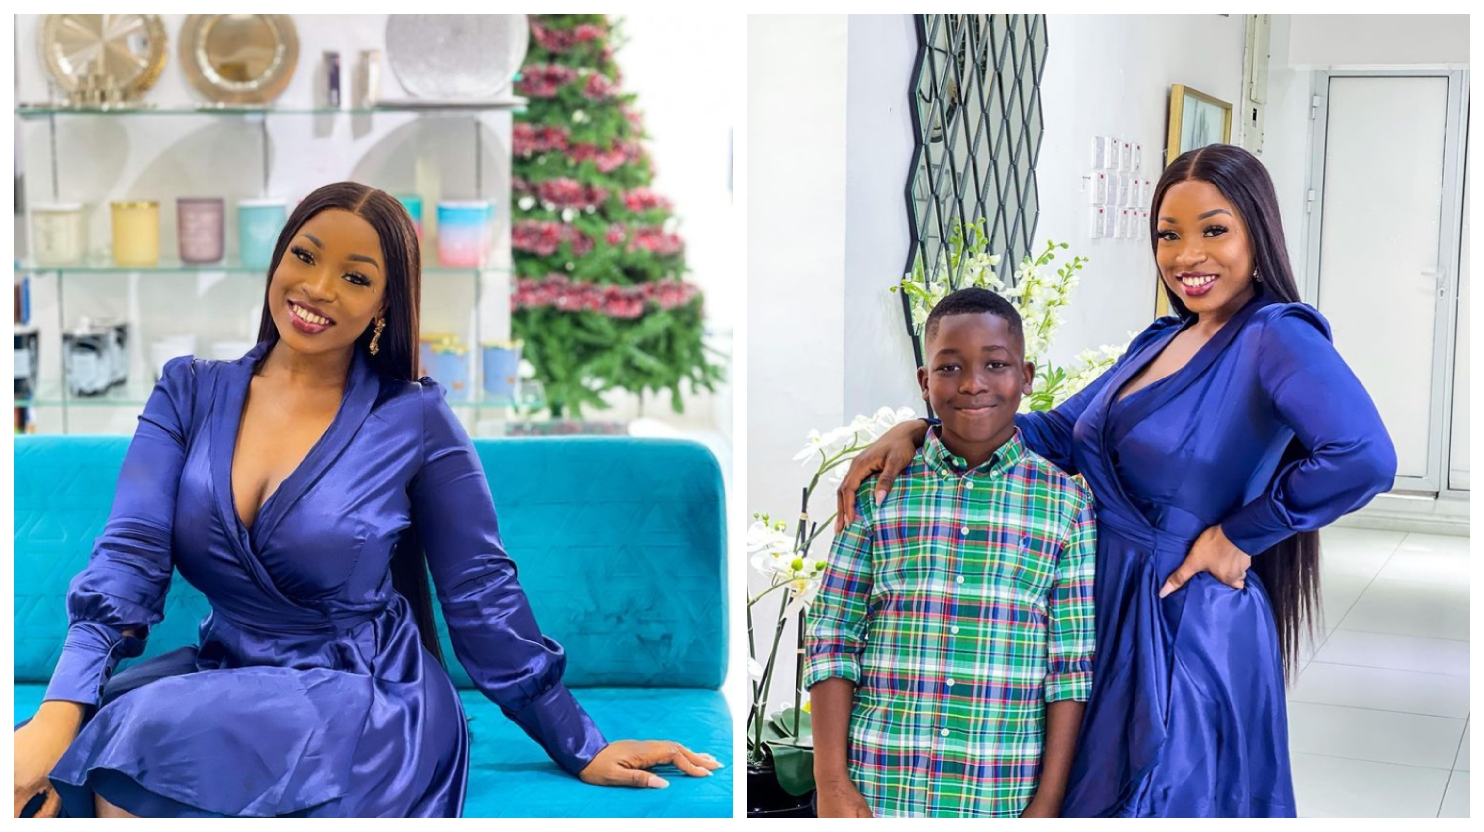 BBNaija: Motherhood is beautiful, Check out recent pictures of Jackie B and her cute son